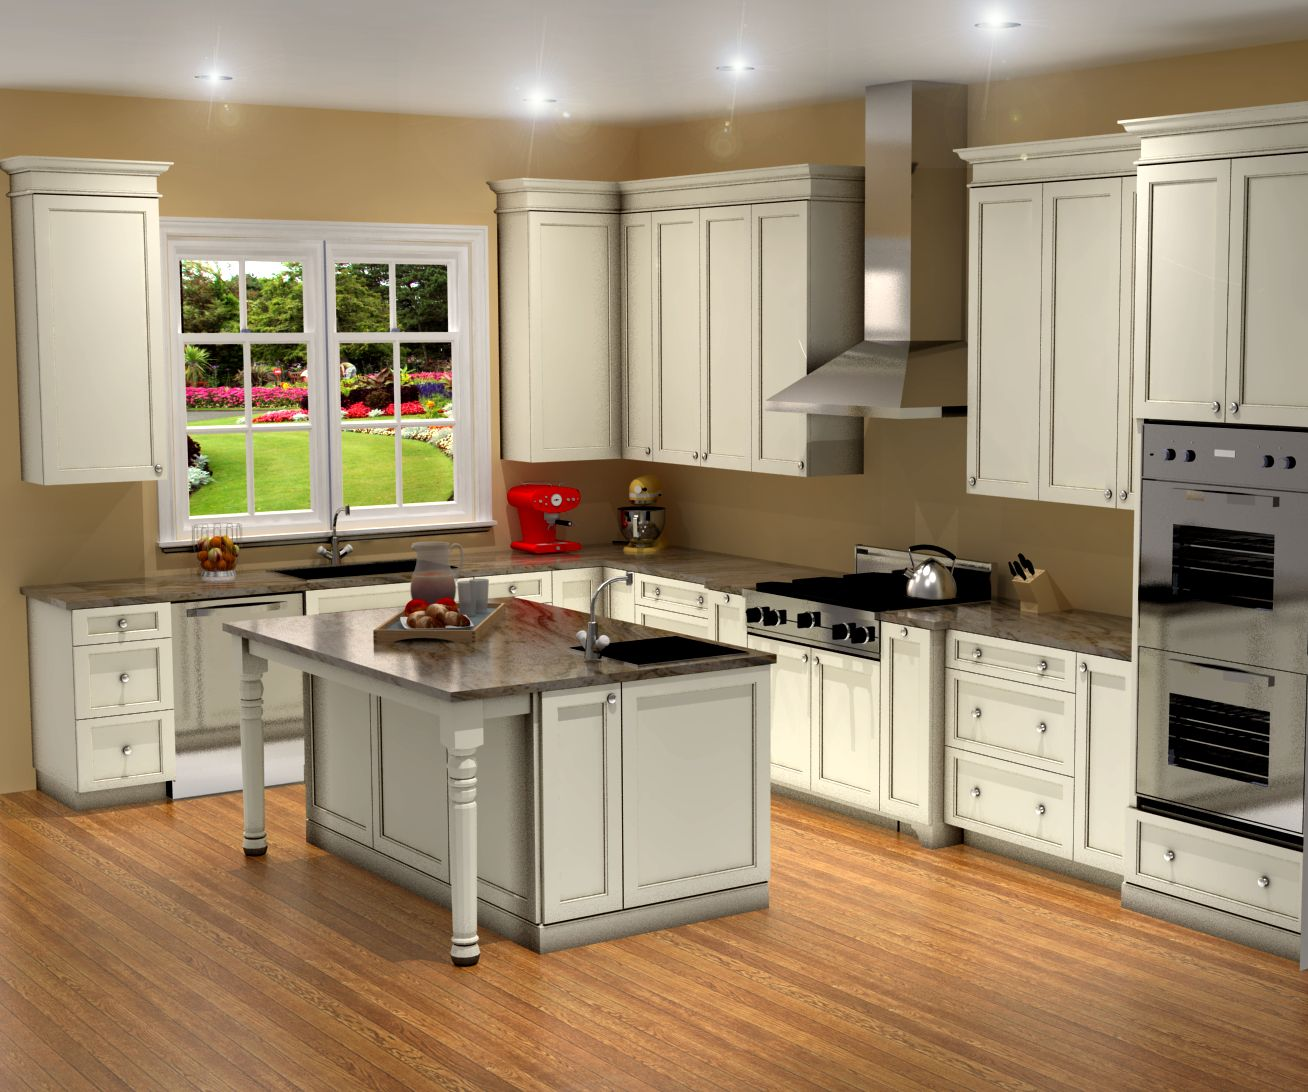 traditional white kitchen design 3d rendering nick miller design. Black Bedroom Furniture Sets. Home Design Ideas